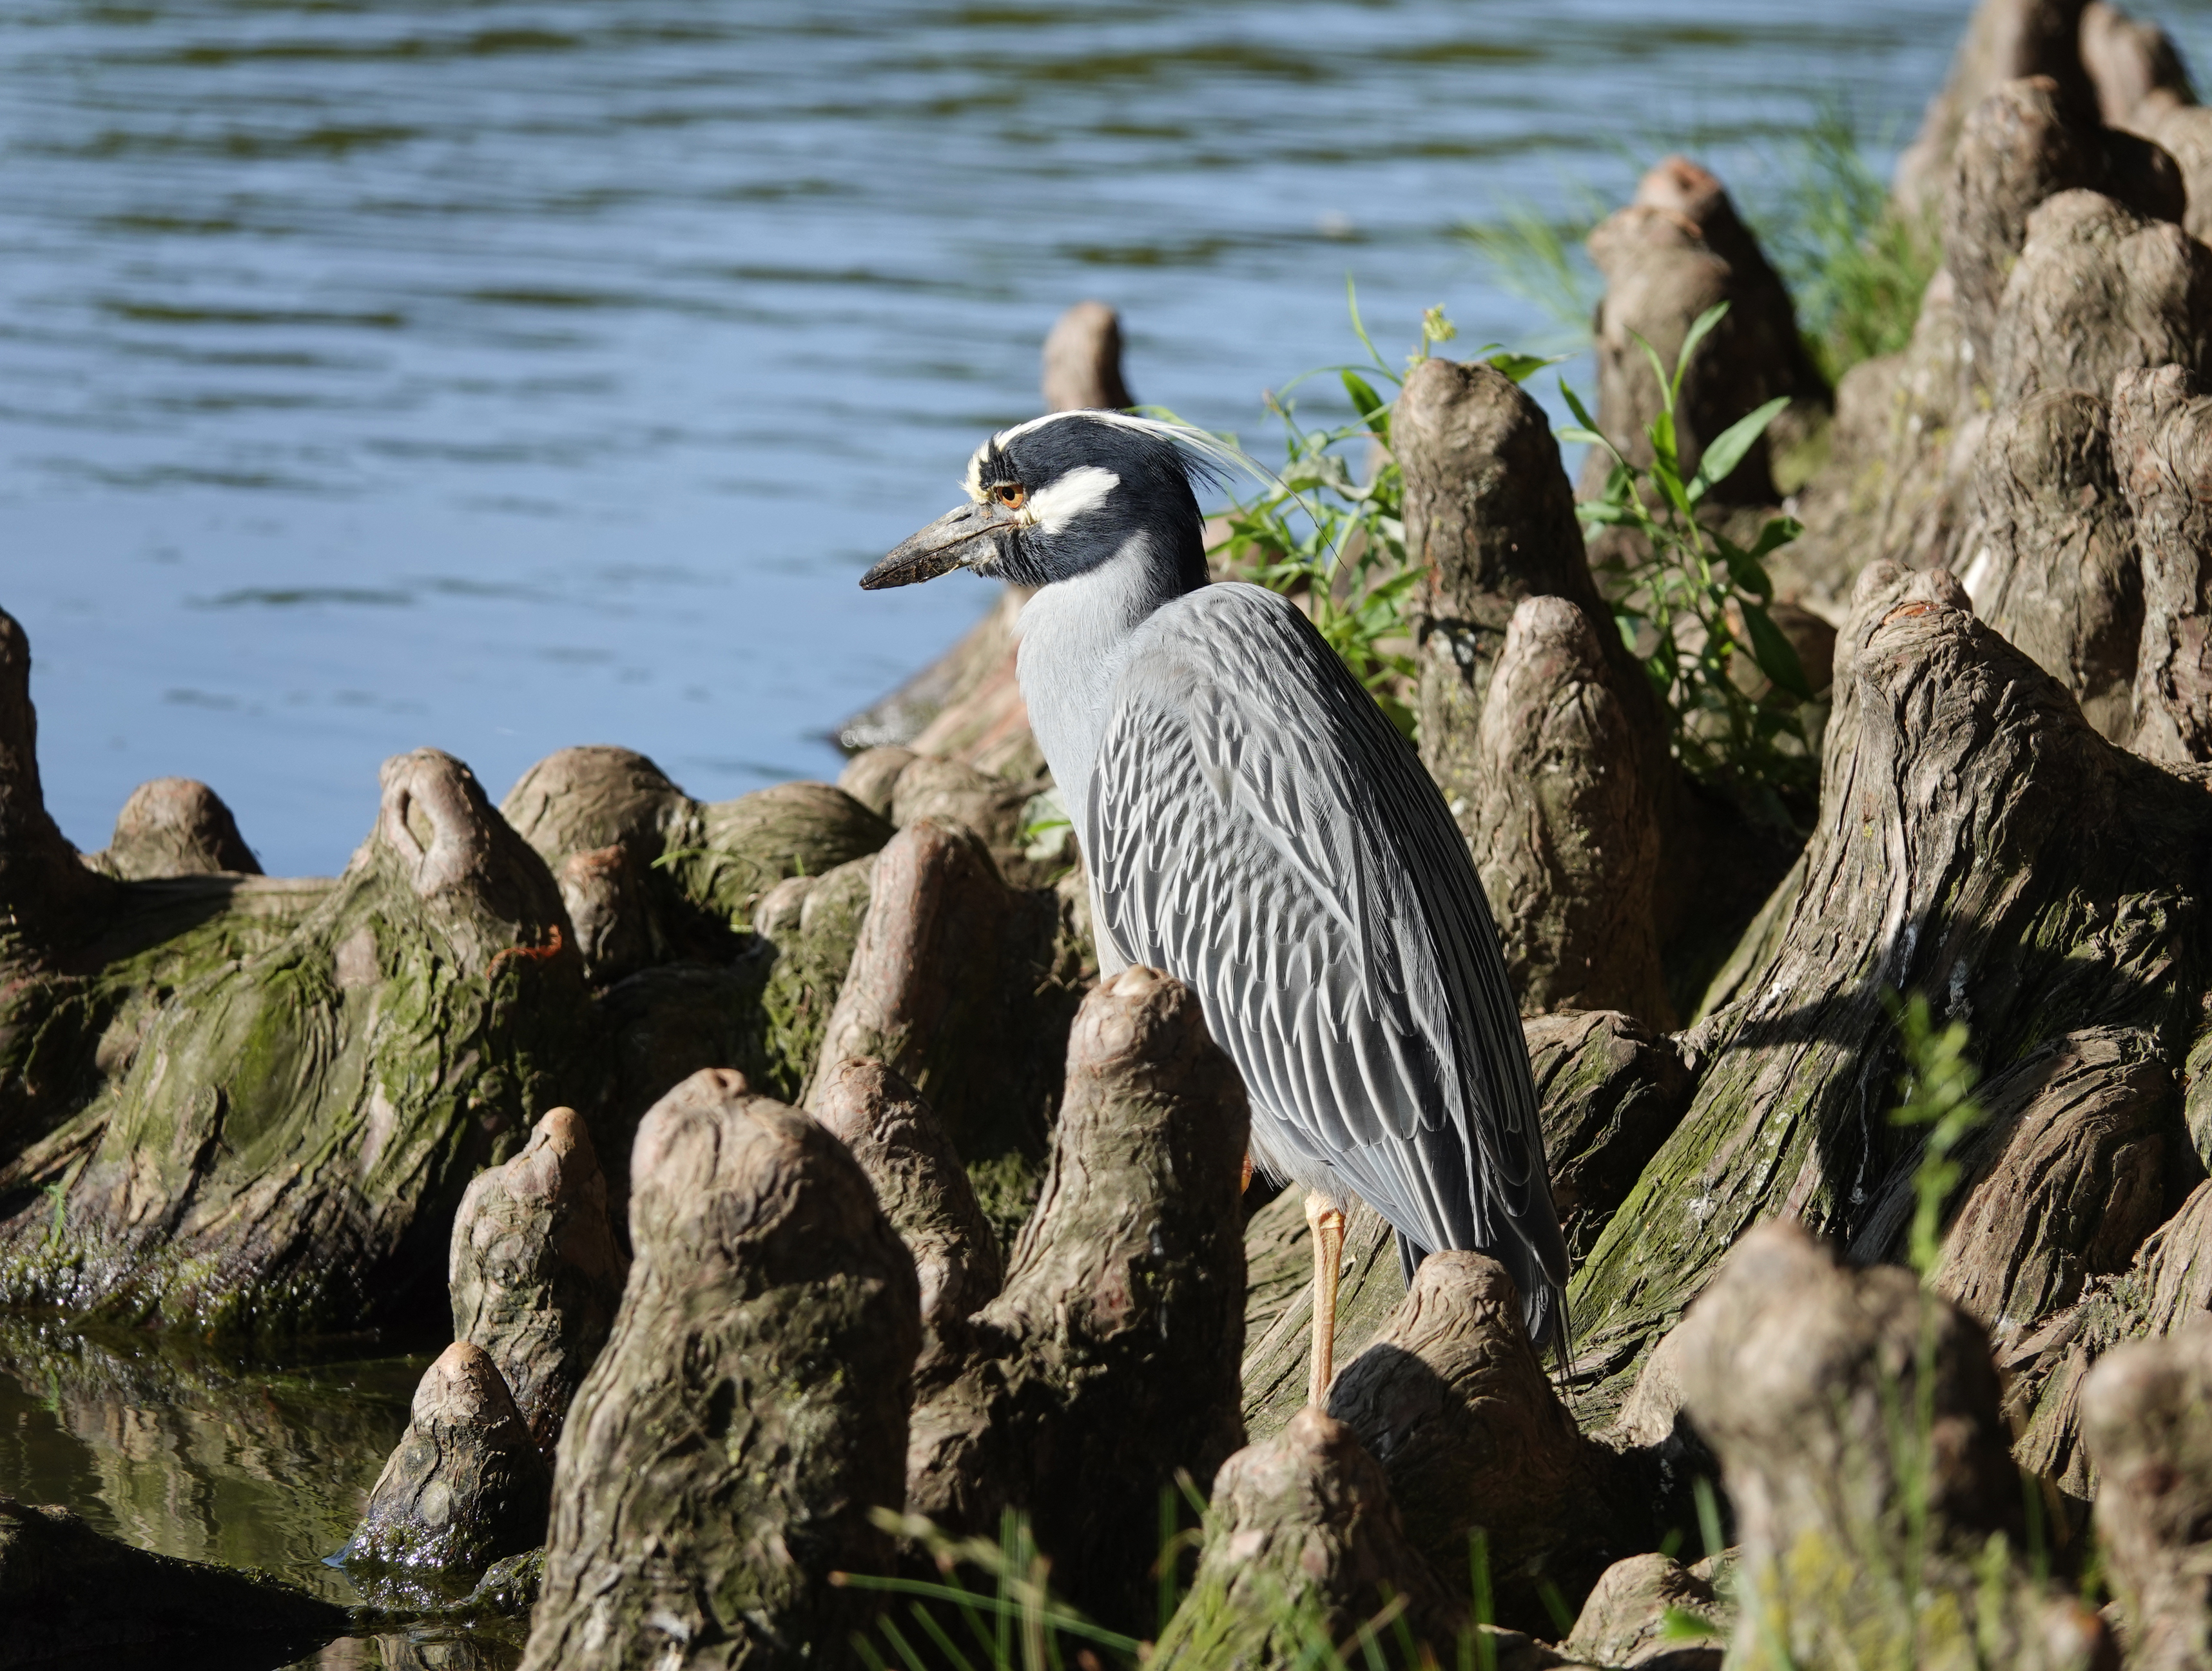 Divine Inspiration Photo #33A - Yellow-Crowned Night Heron - 8 x 10